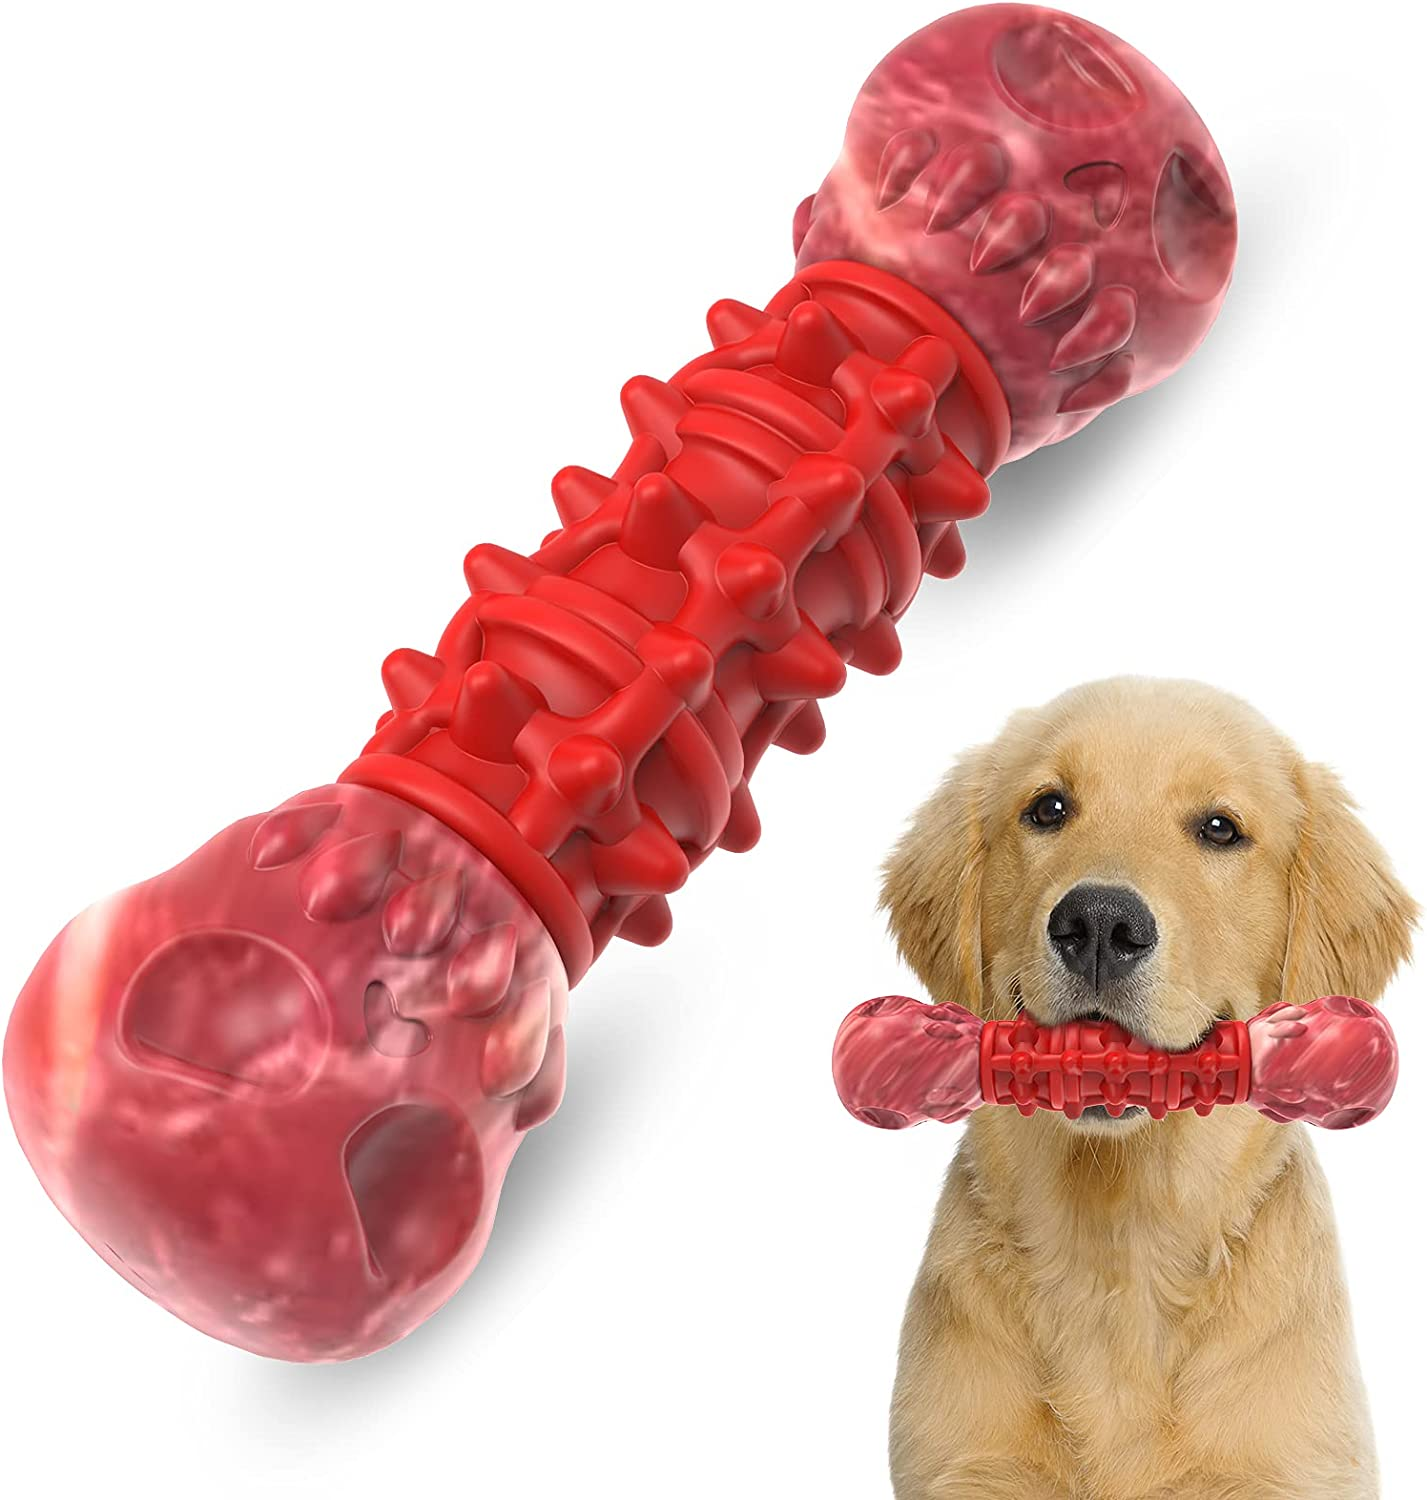 CHAFIN Ranking TOP7 Durable Natural Rubber Dog Aggressive Chew Toys for Chewe Don't miss the campaign